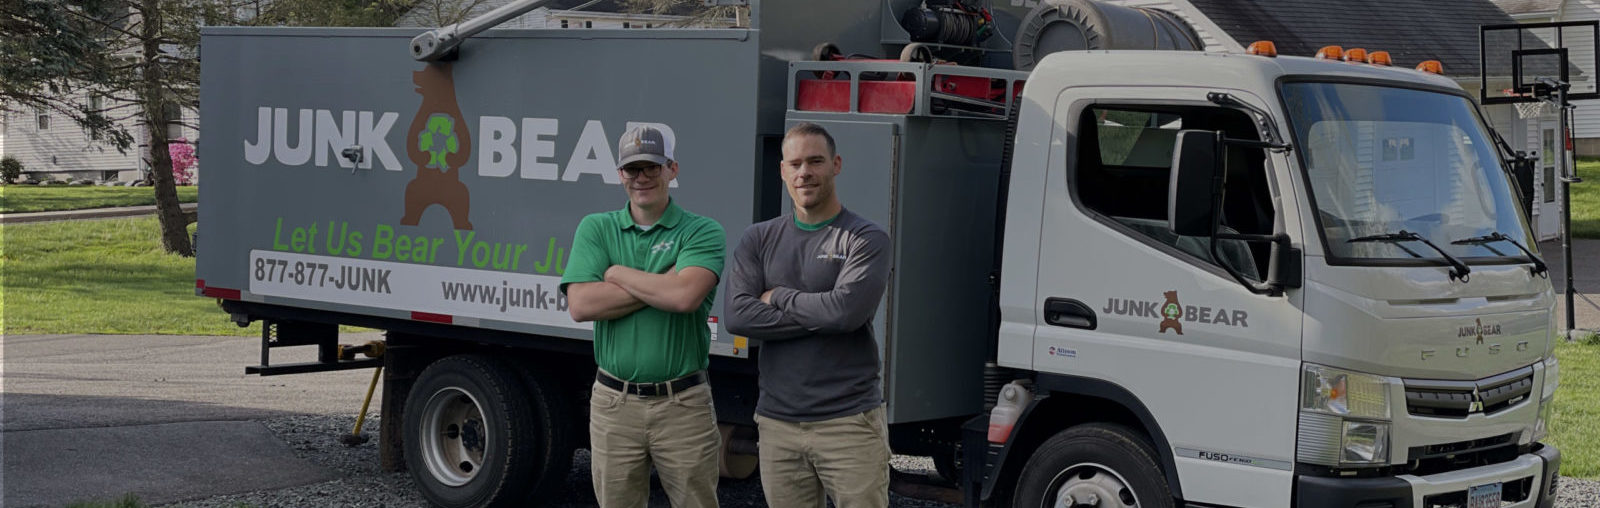 Junk removal in Cheshire, CT